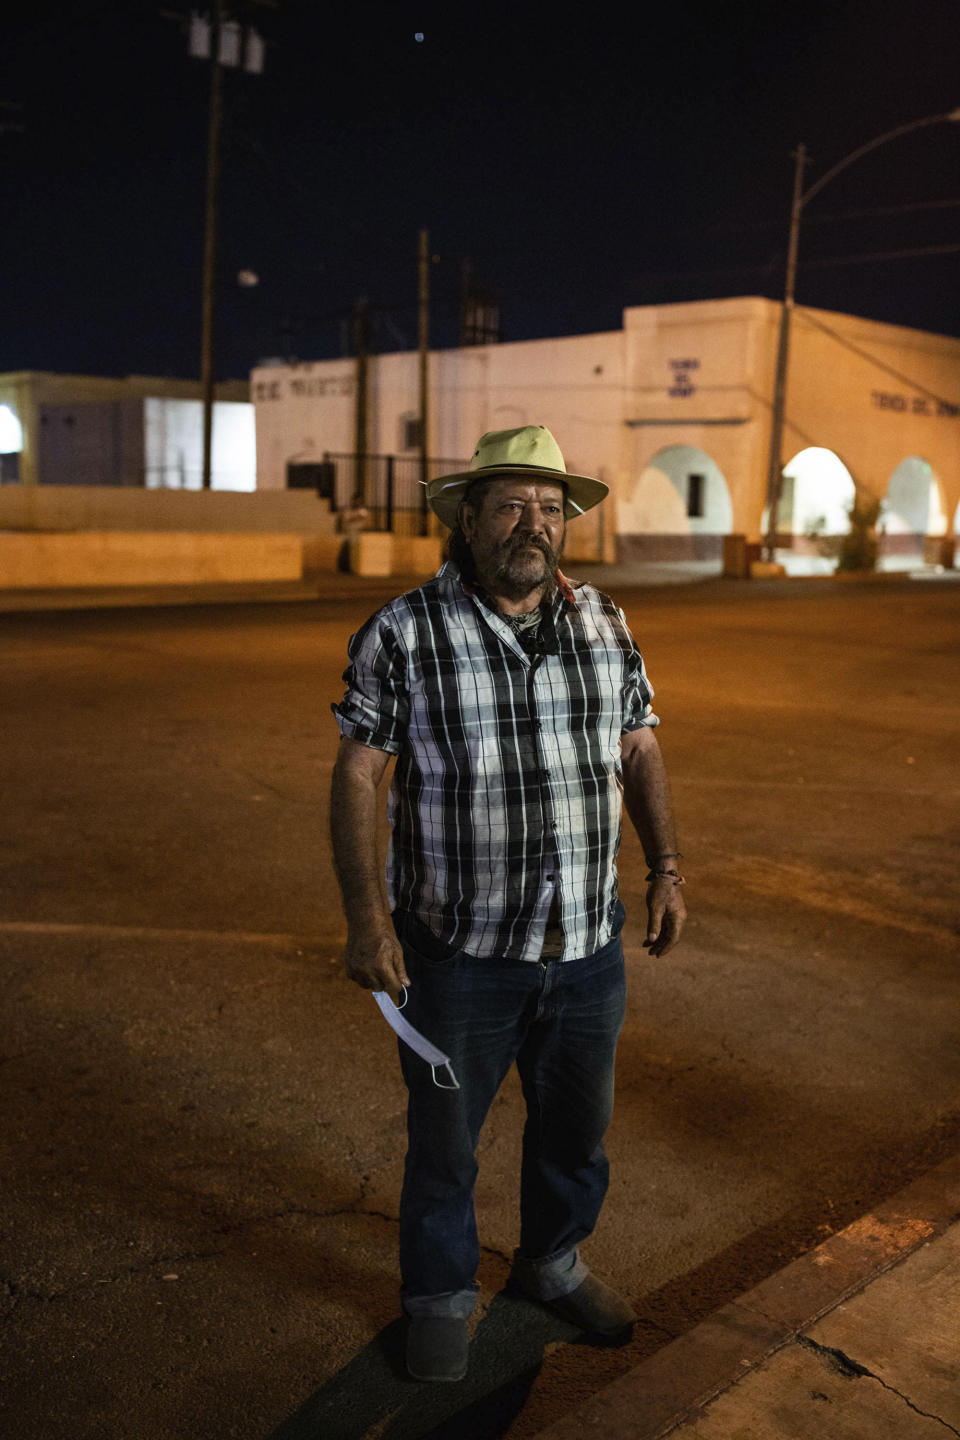 Sergio Gomes Macias stands on street in Calexico, Calif., on July 23, 2020. Macias is a farmworker who sleeps on the street about 500 feet from the Mexican border. He says the pandemic has made it hard to find food, water and restrooms since nonessential businesses closed amid high infection rates in the area. Many homeless people work low-wage essential jobs on the front lines of the pandemic, putting them at higher risk of catching and possibly transmitting the virus. Many who work with these communities are reluctant to speak about this risk for fear of further stigmatizing homeless people, even though they do the front-line jobs others can avoid. (Anna Maria Barry-Jester/KHN and the Howard Center For Investigative Journalism via AP)